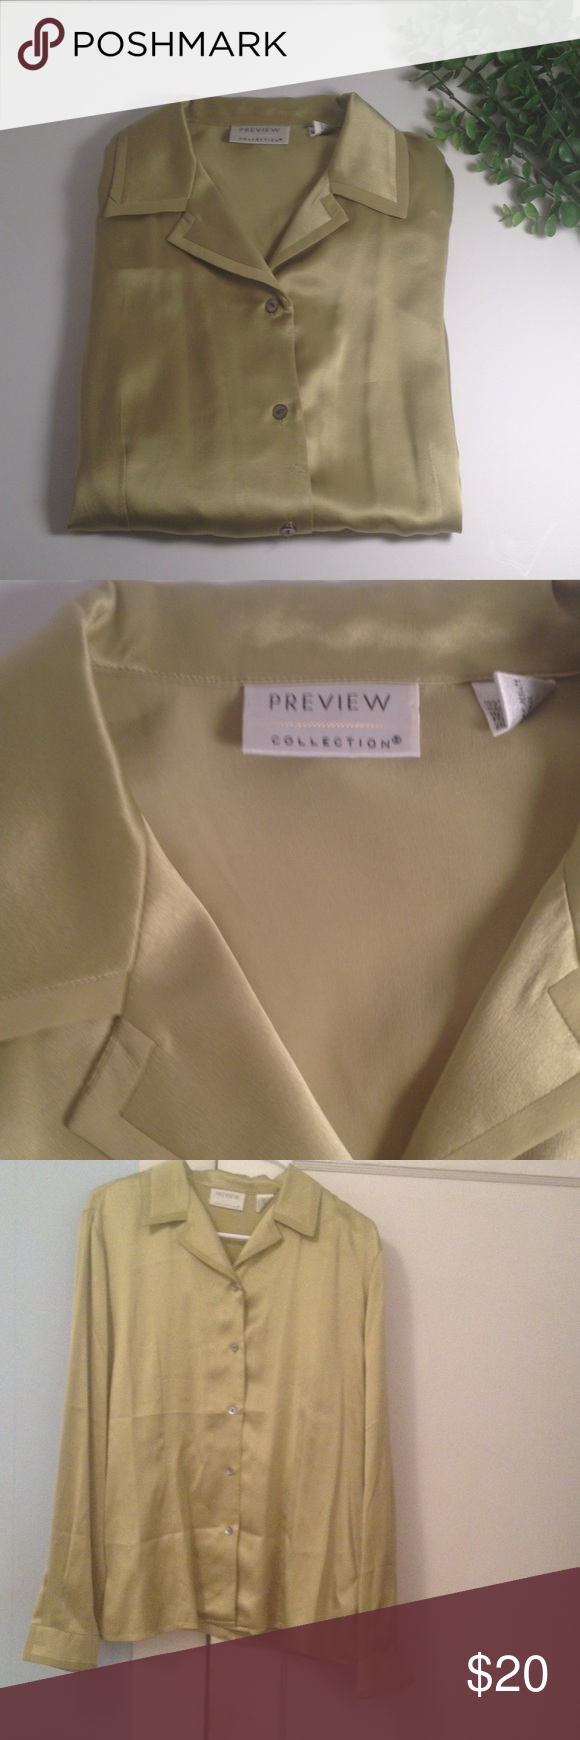 Preview Collection Silk Blouse Preview Collection Silk Blouse. Size L. Composition is 100% silk. Preview Collection Tops Blouses